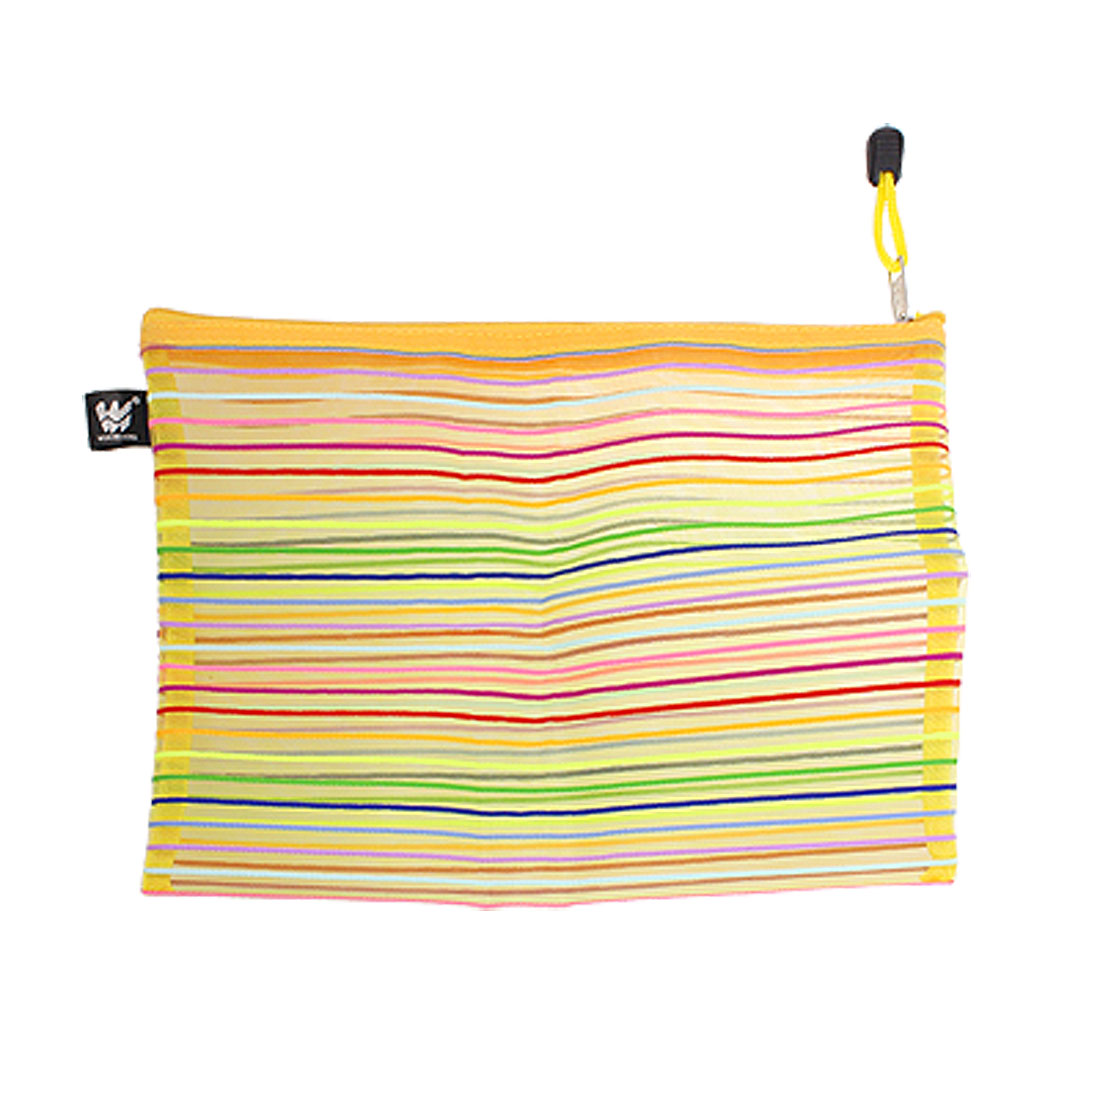 Meshy Style Colorful Stripe Pattern Sheer Nylon Zipper File Bag Holder